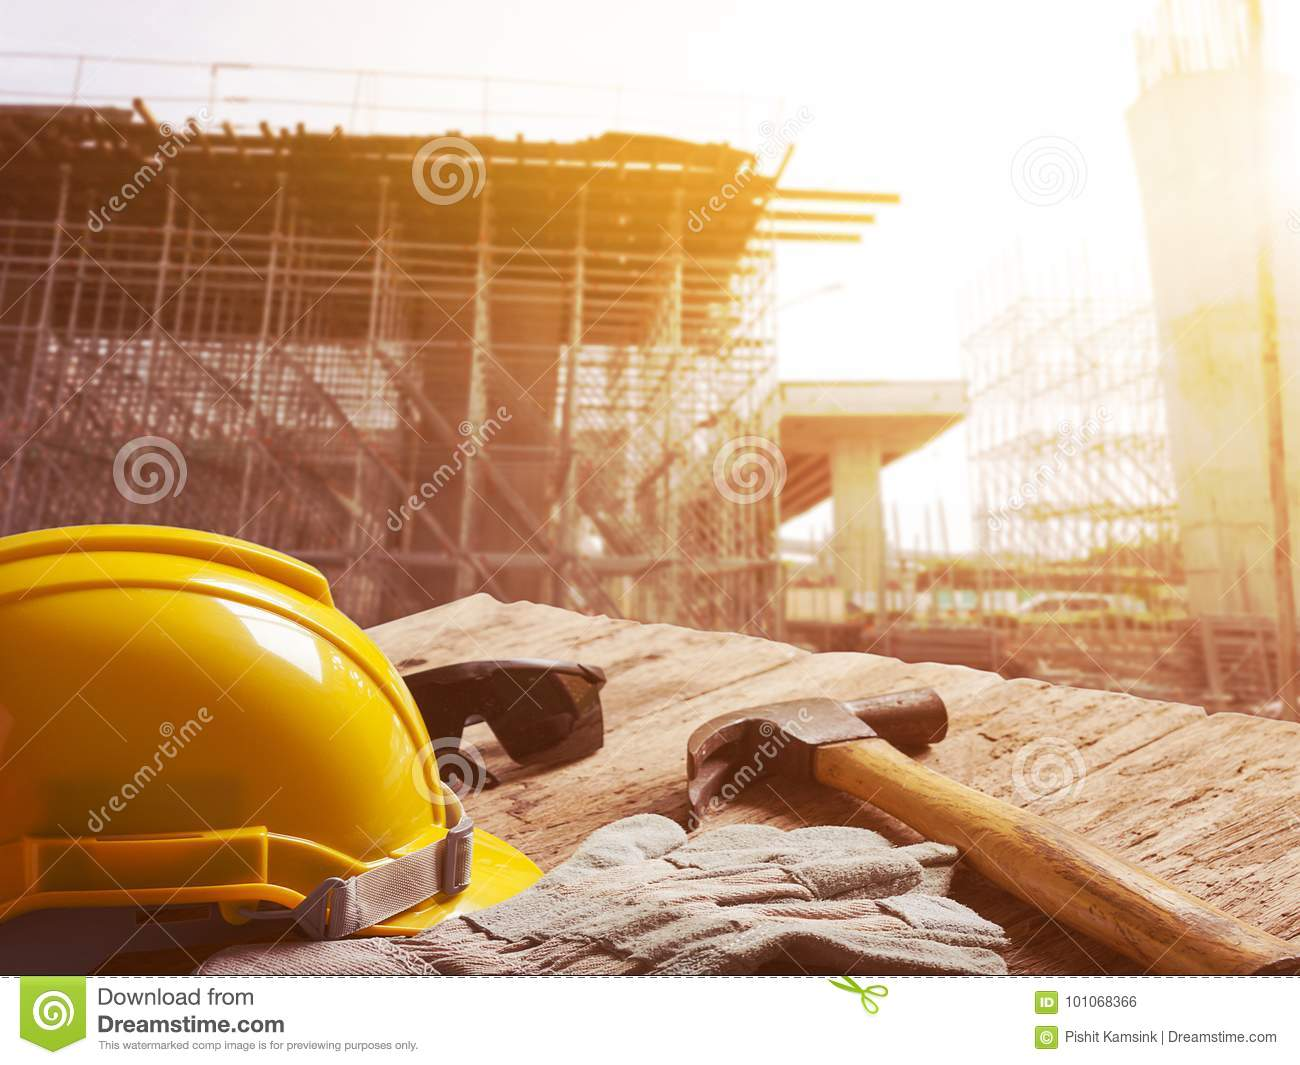 Safety helmet on table top with construction site in background